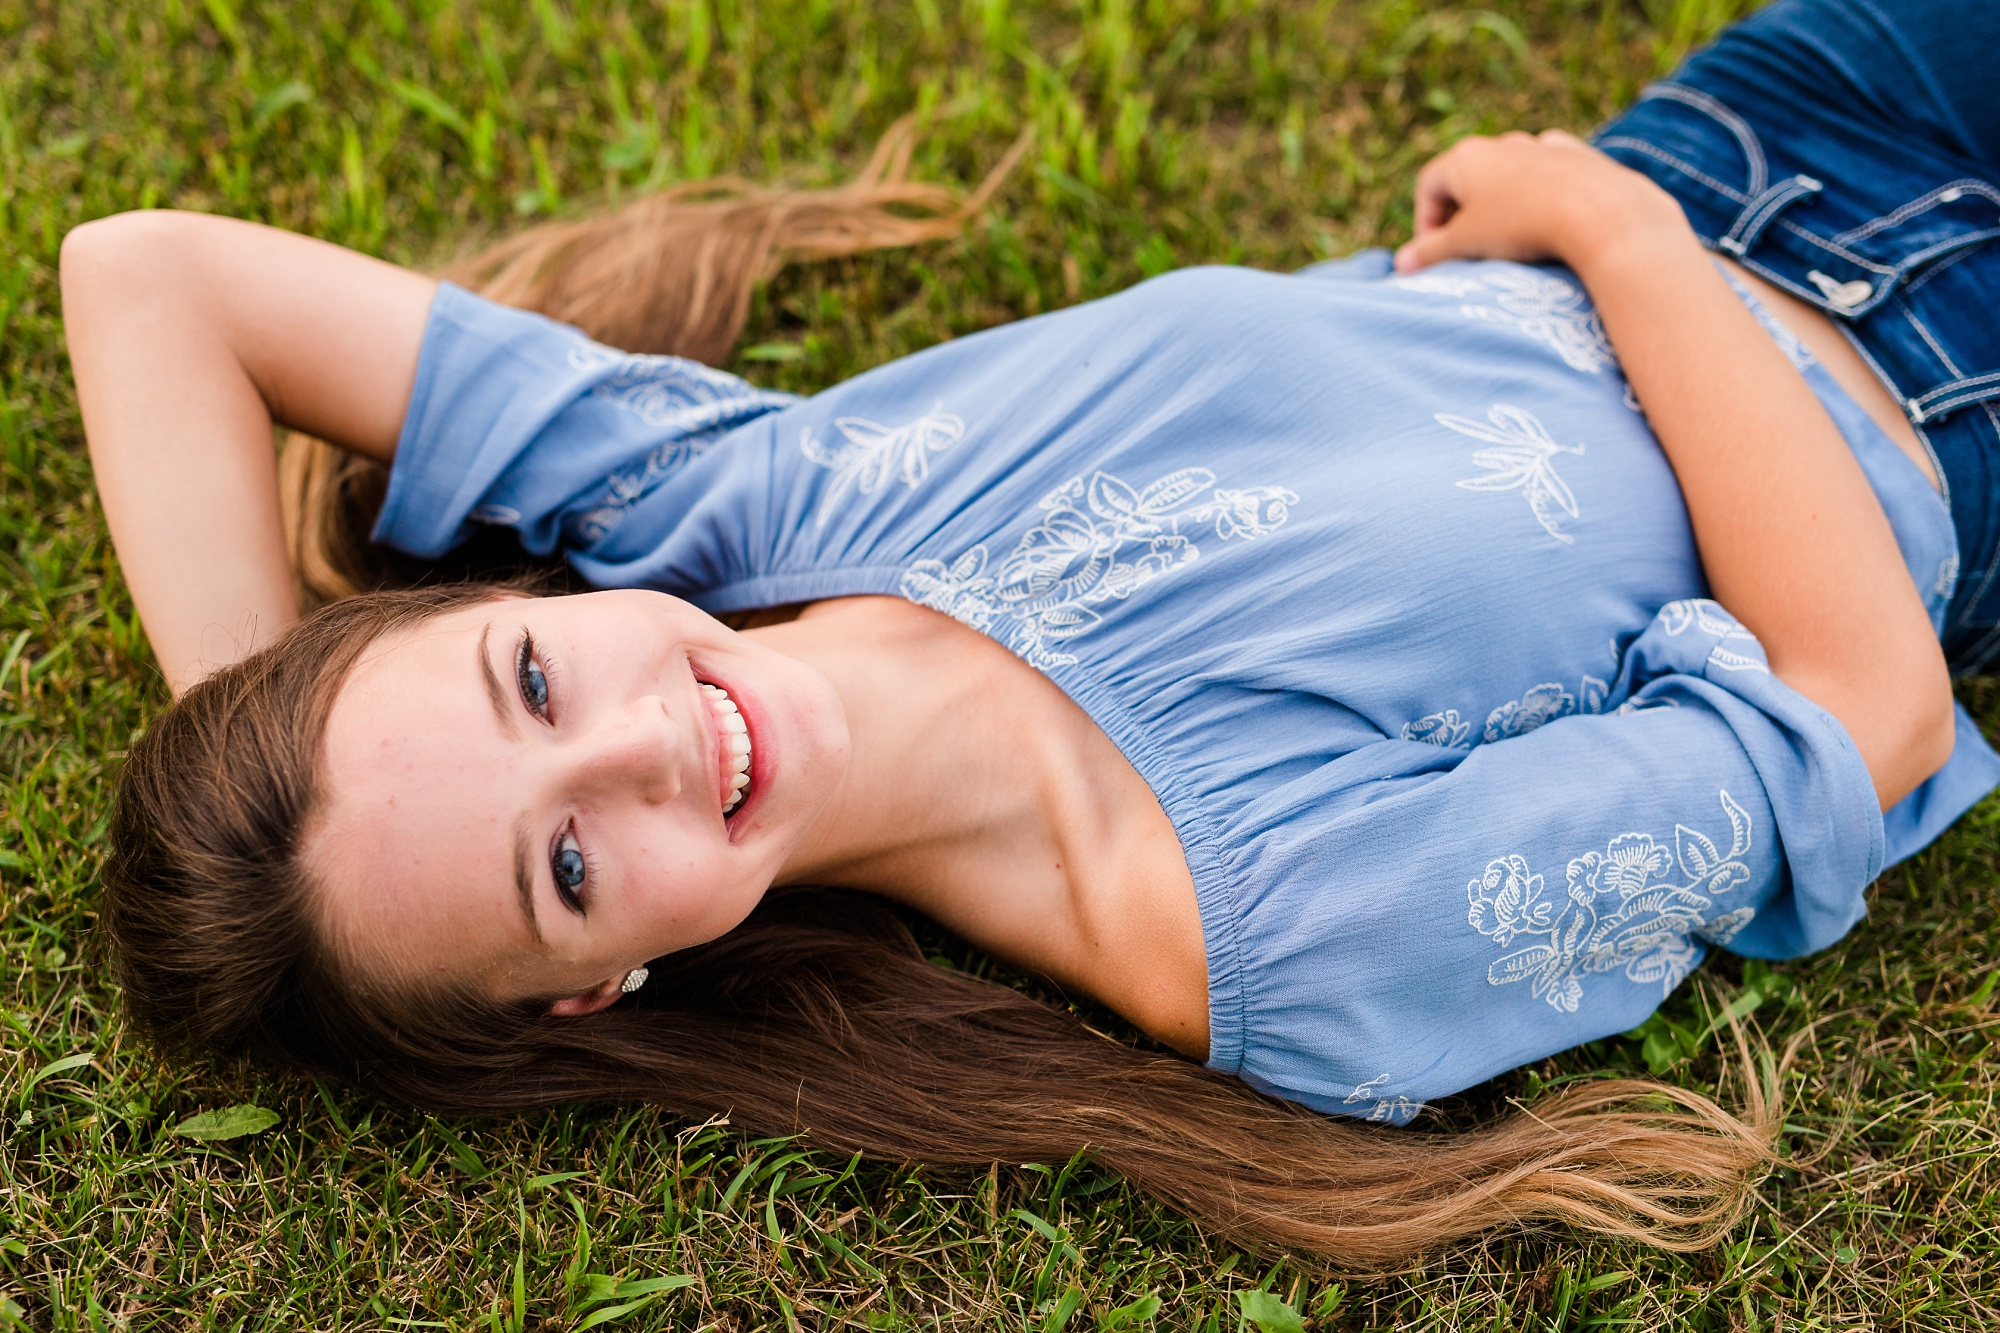 Dance and Country Styled High School Senior Session by Amber Langerud Photography near Audubon in a grassy field | Riley